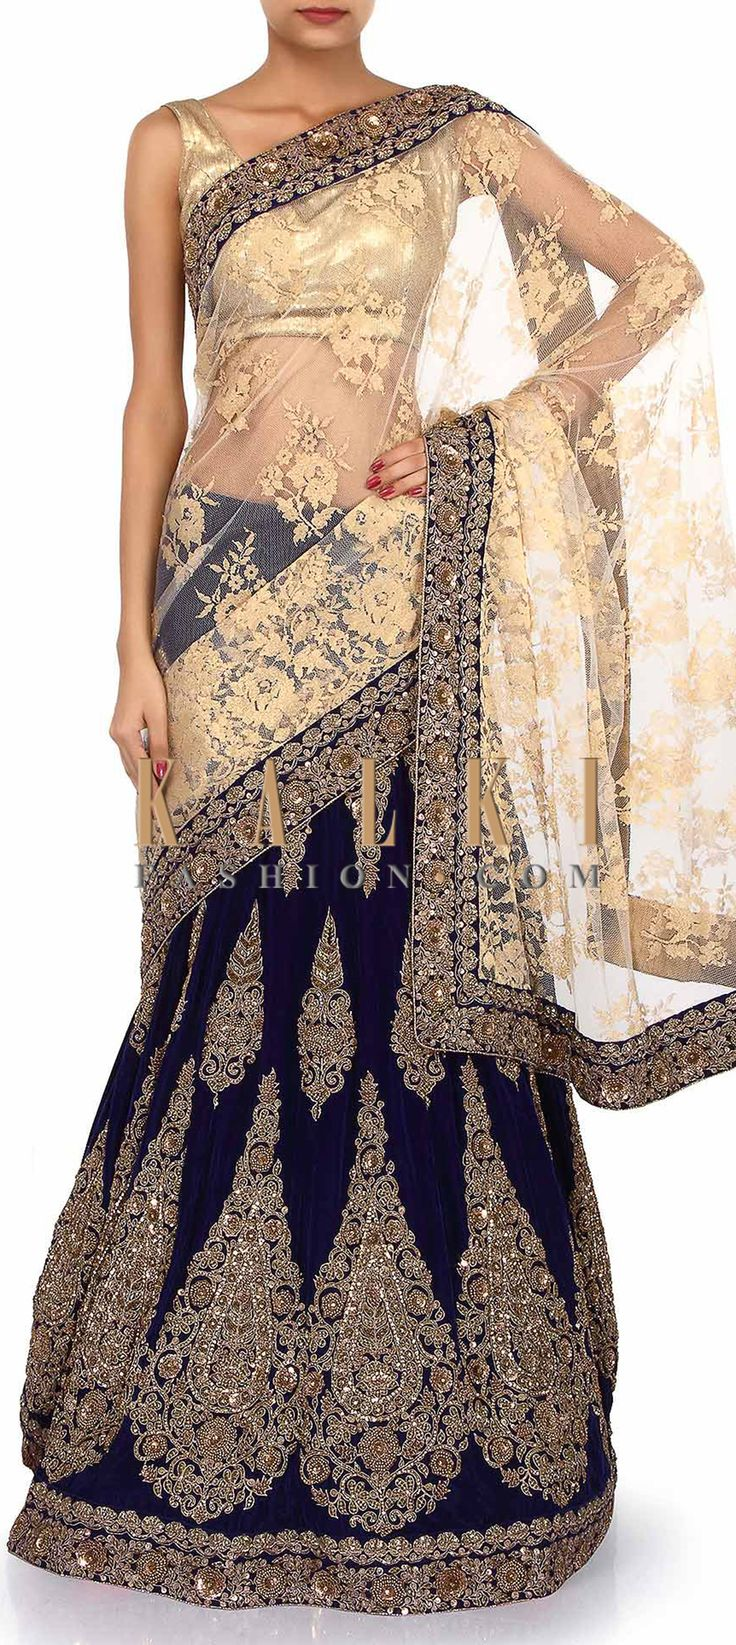 Buy Online from the link below. We ship worldwide (Free Shipping over US$100). Product SKU - 254644. Product Link - http://www.kalkifashion.com/lehenga-saree-adorn-in-gold-and-navy-blue-with-zardosi-embroidery-only-on-kalki.html